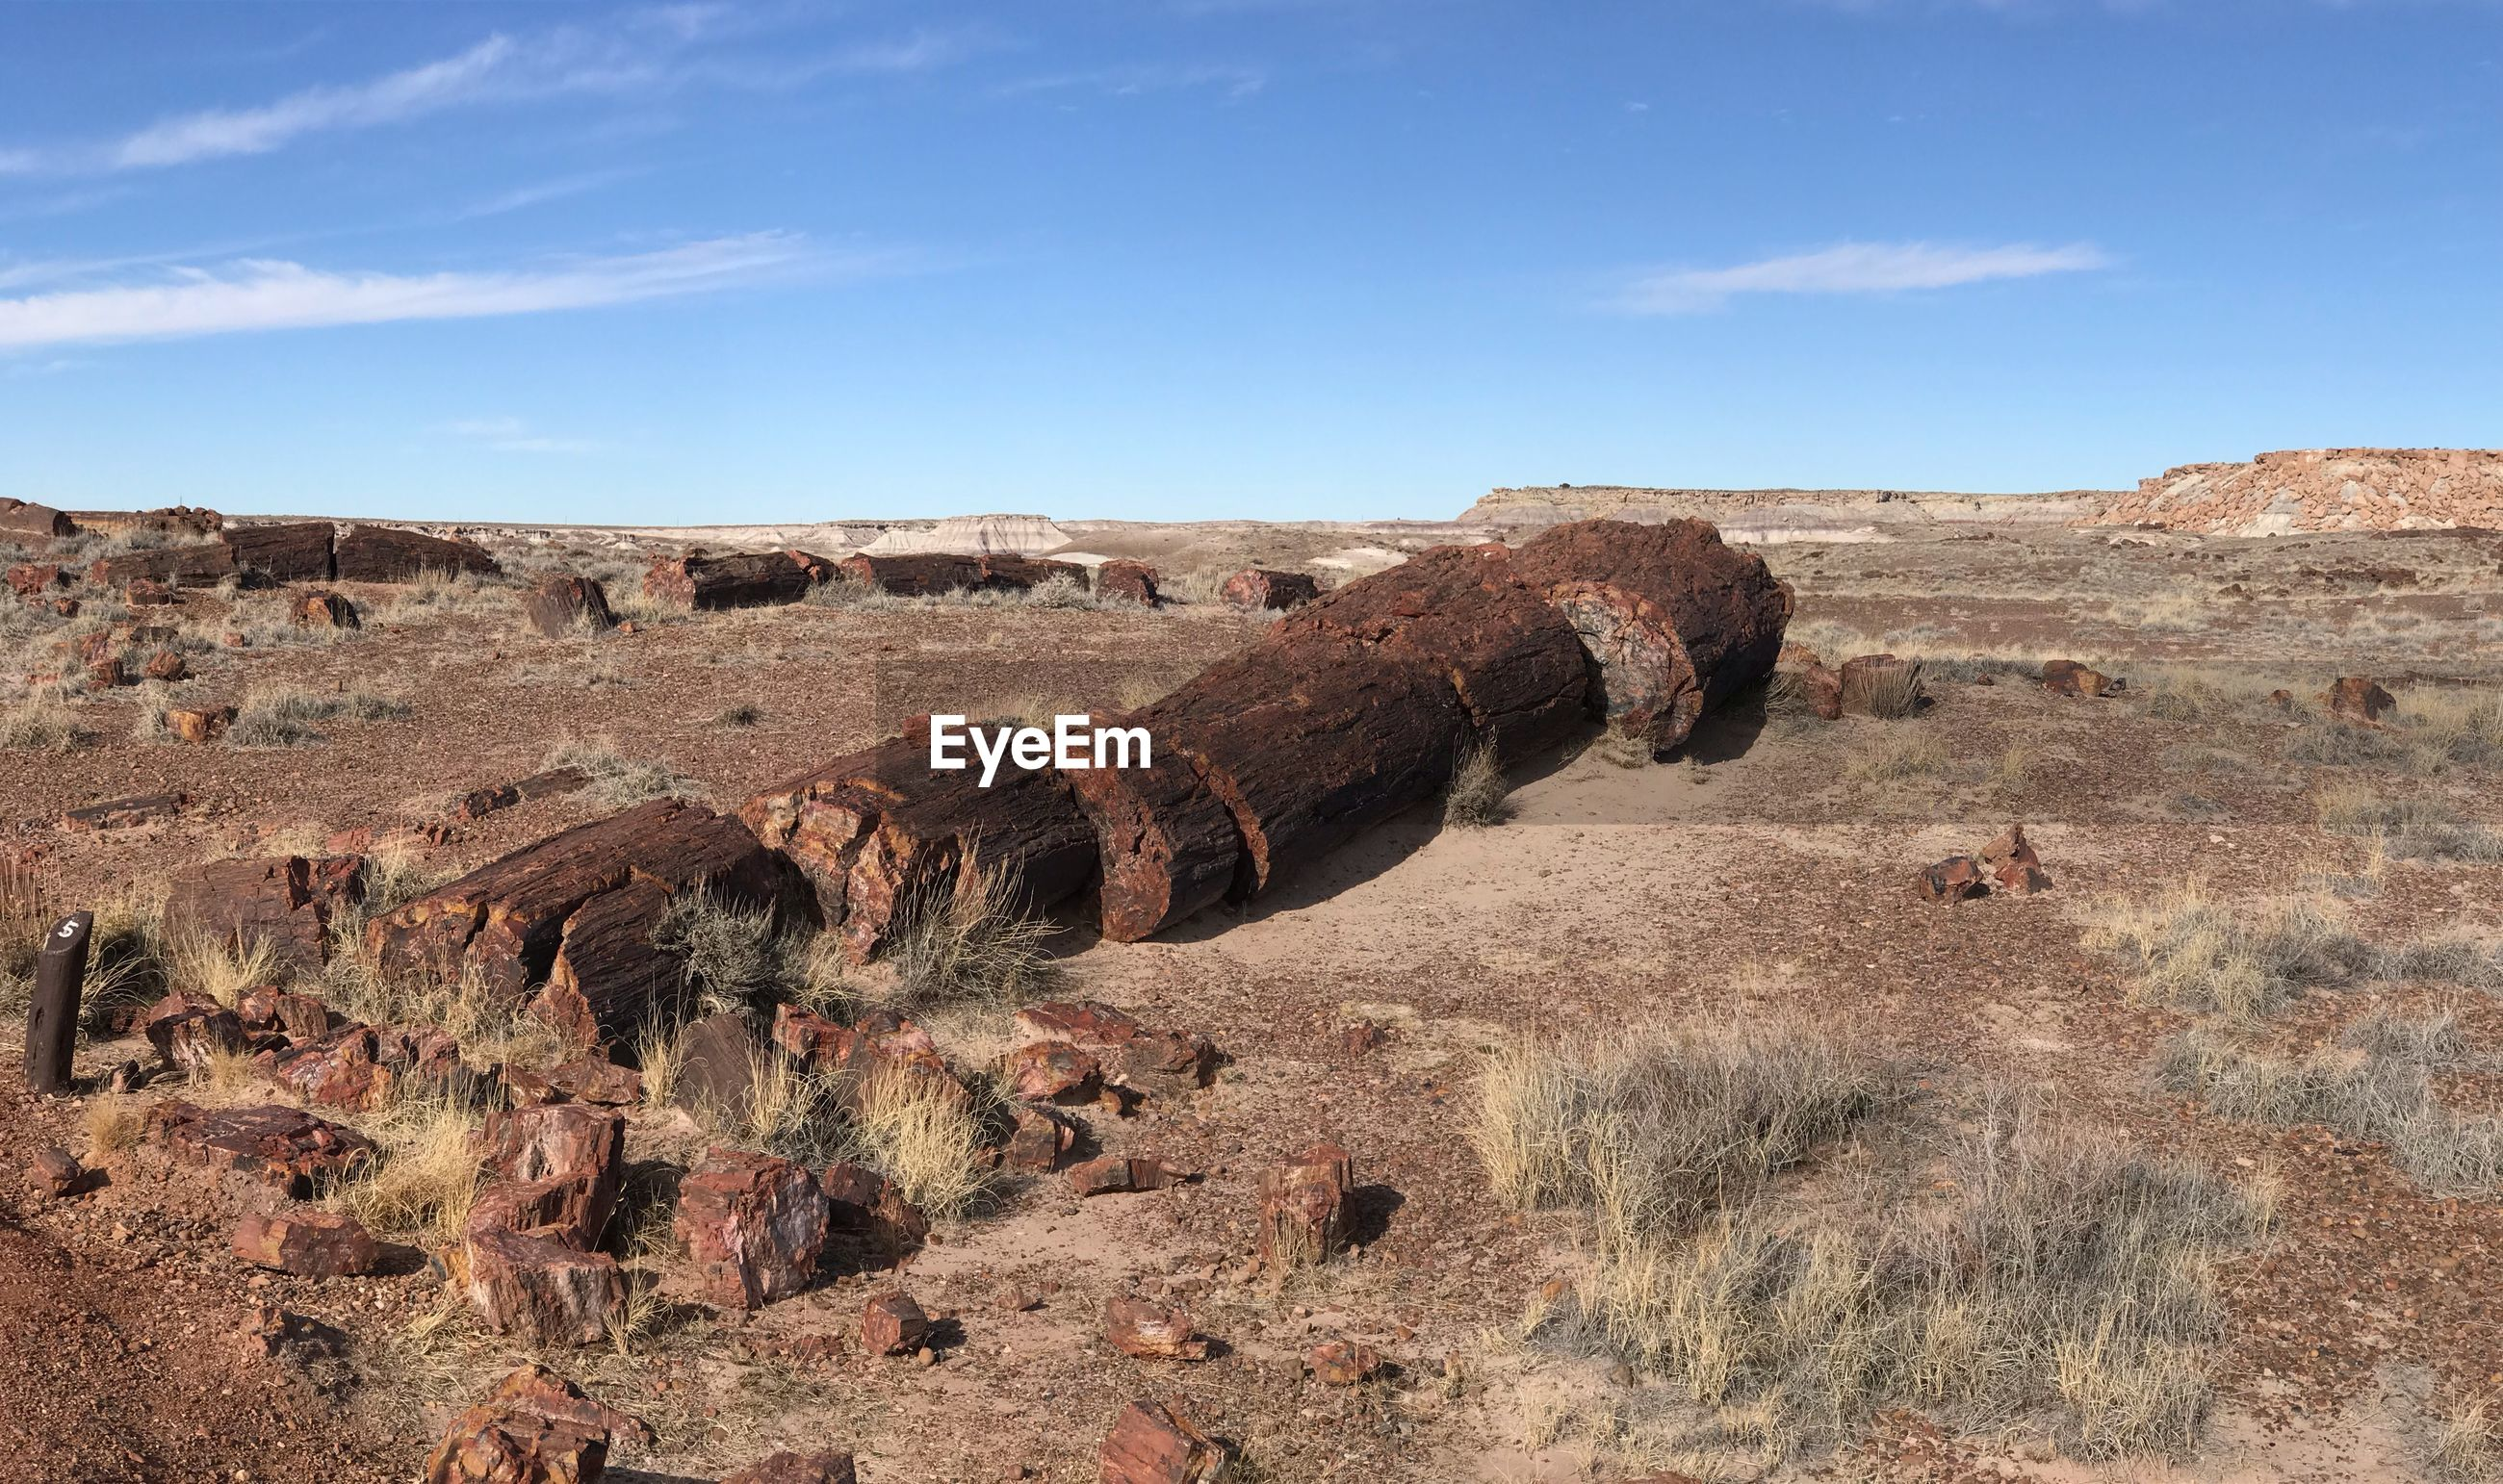 PANORAMIC VIEW OF ROCK FORMATIONS ON FIELD AGAINST SKY